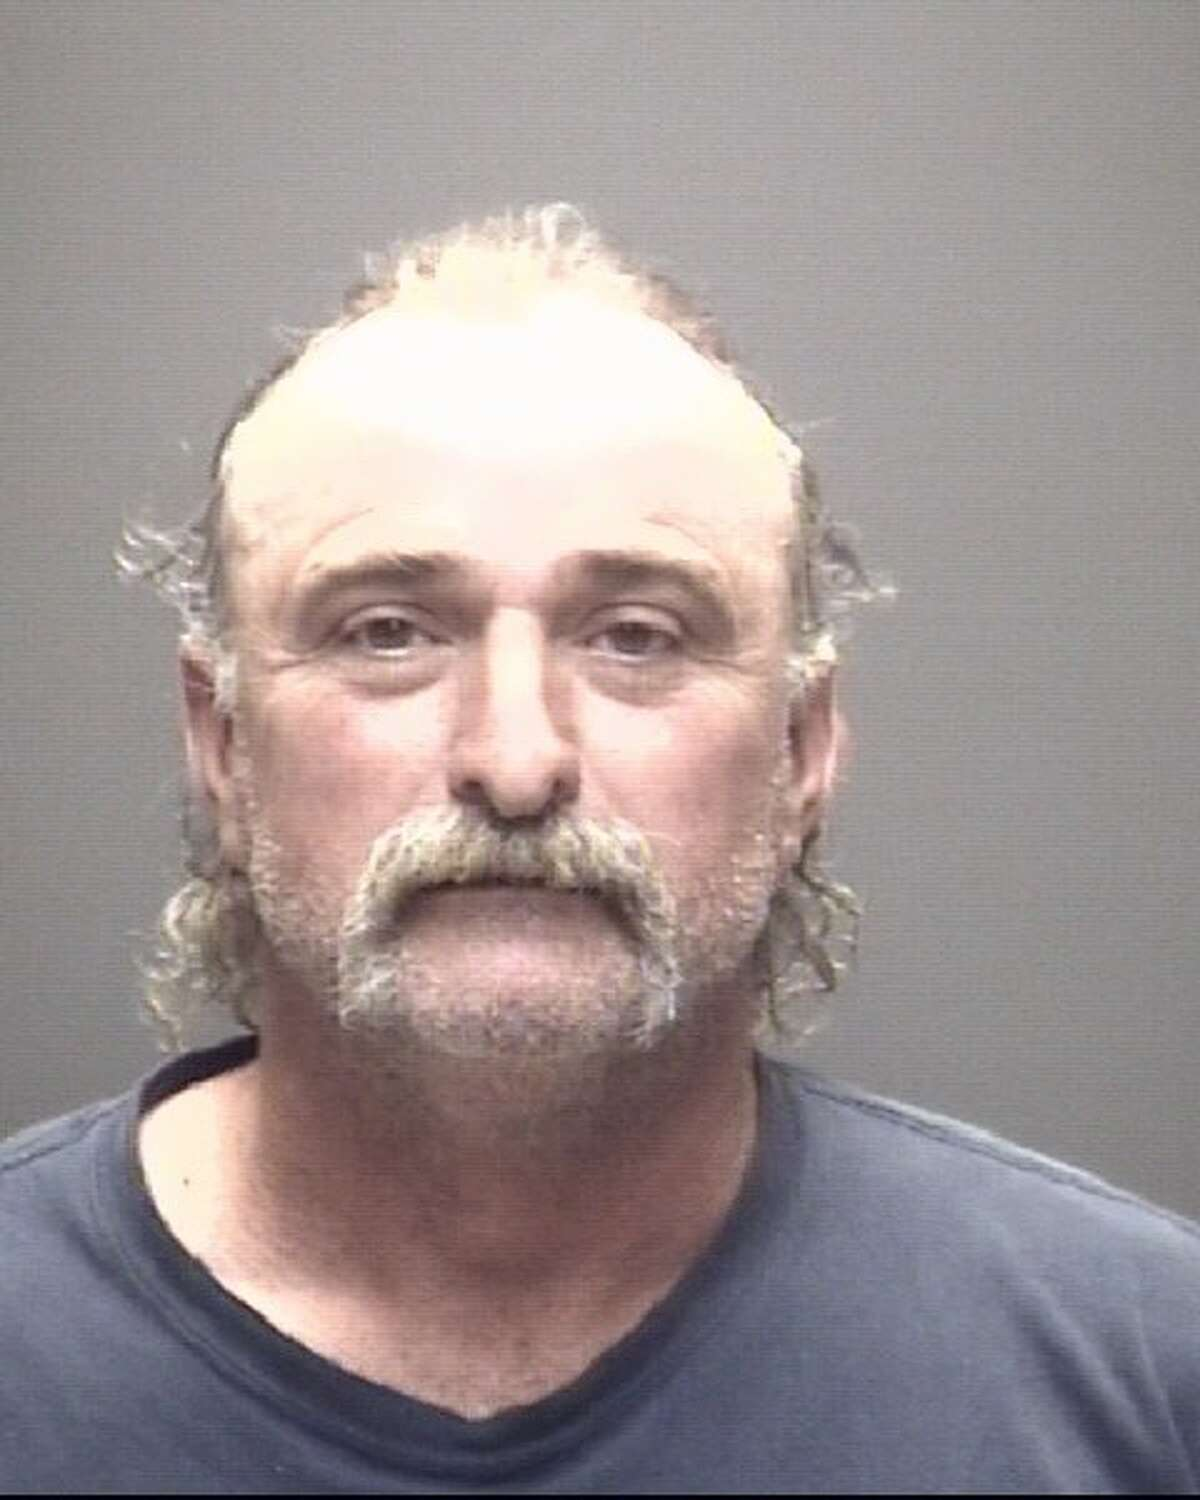 PHOTOS: Recent extreme DWI sentences in Texas Lonnie Gene Kinnett was sentenced to life in prison Wednesday, Sept. 26, on his latest charge of driving while intoxicated. >>>See more extreme DWI sentences around the state in the last three years